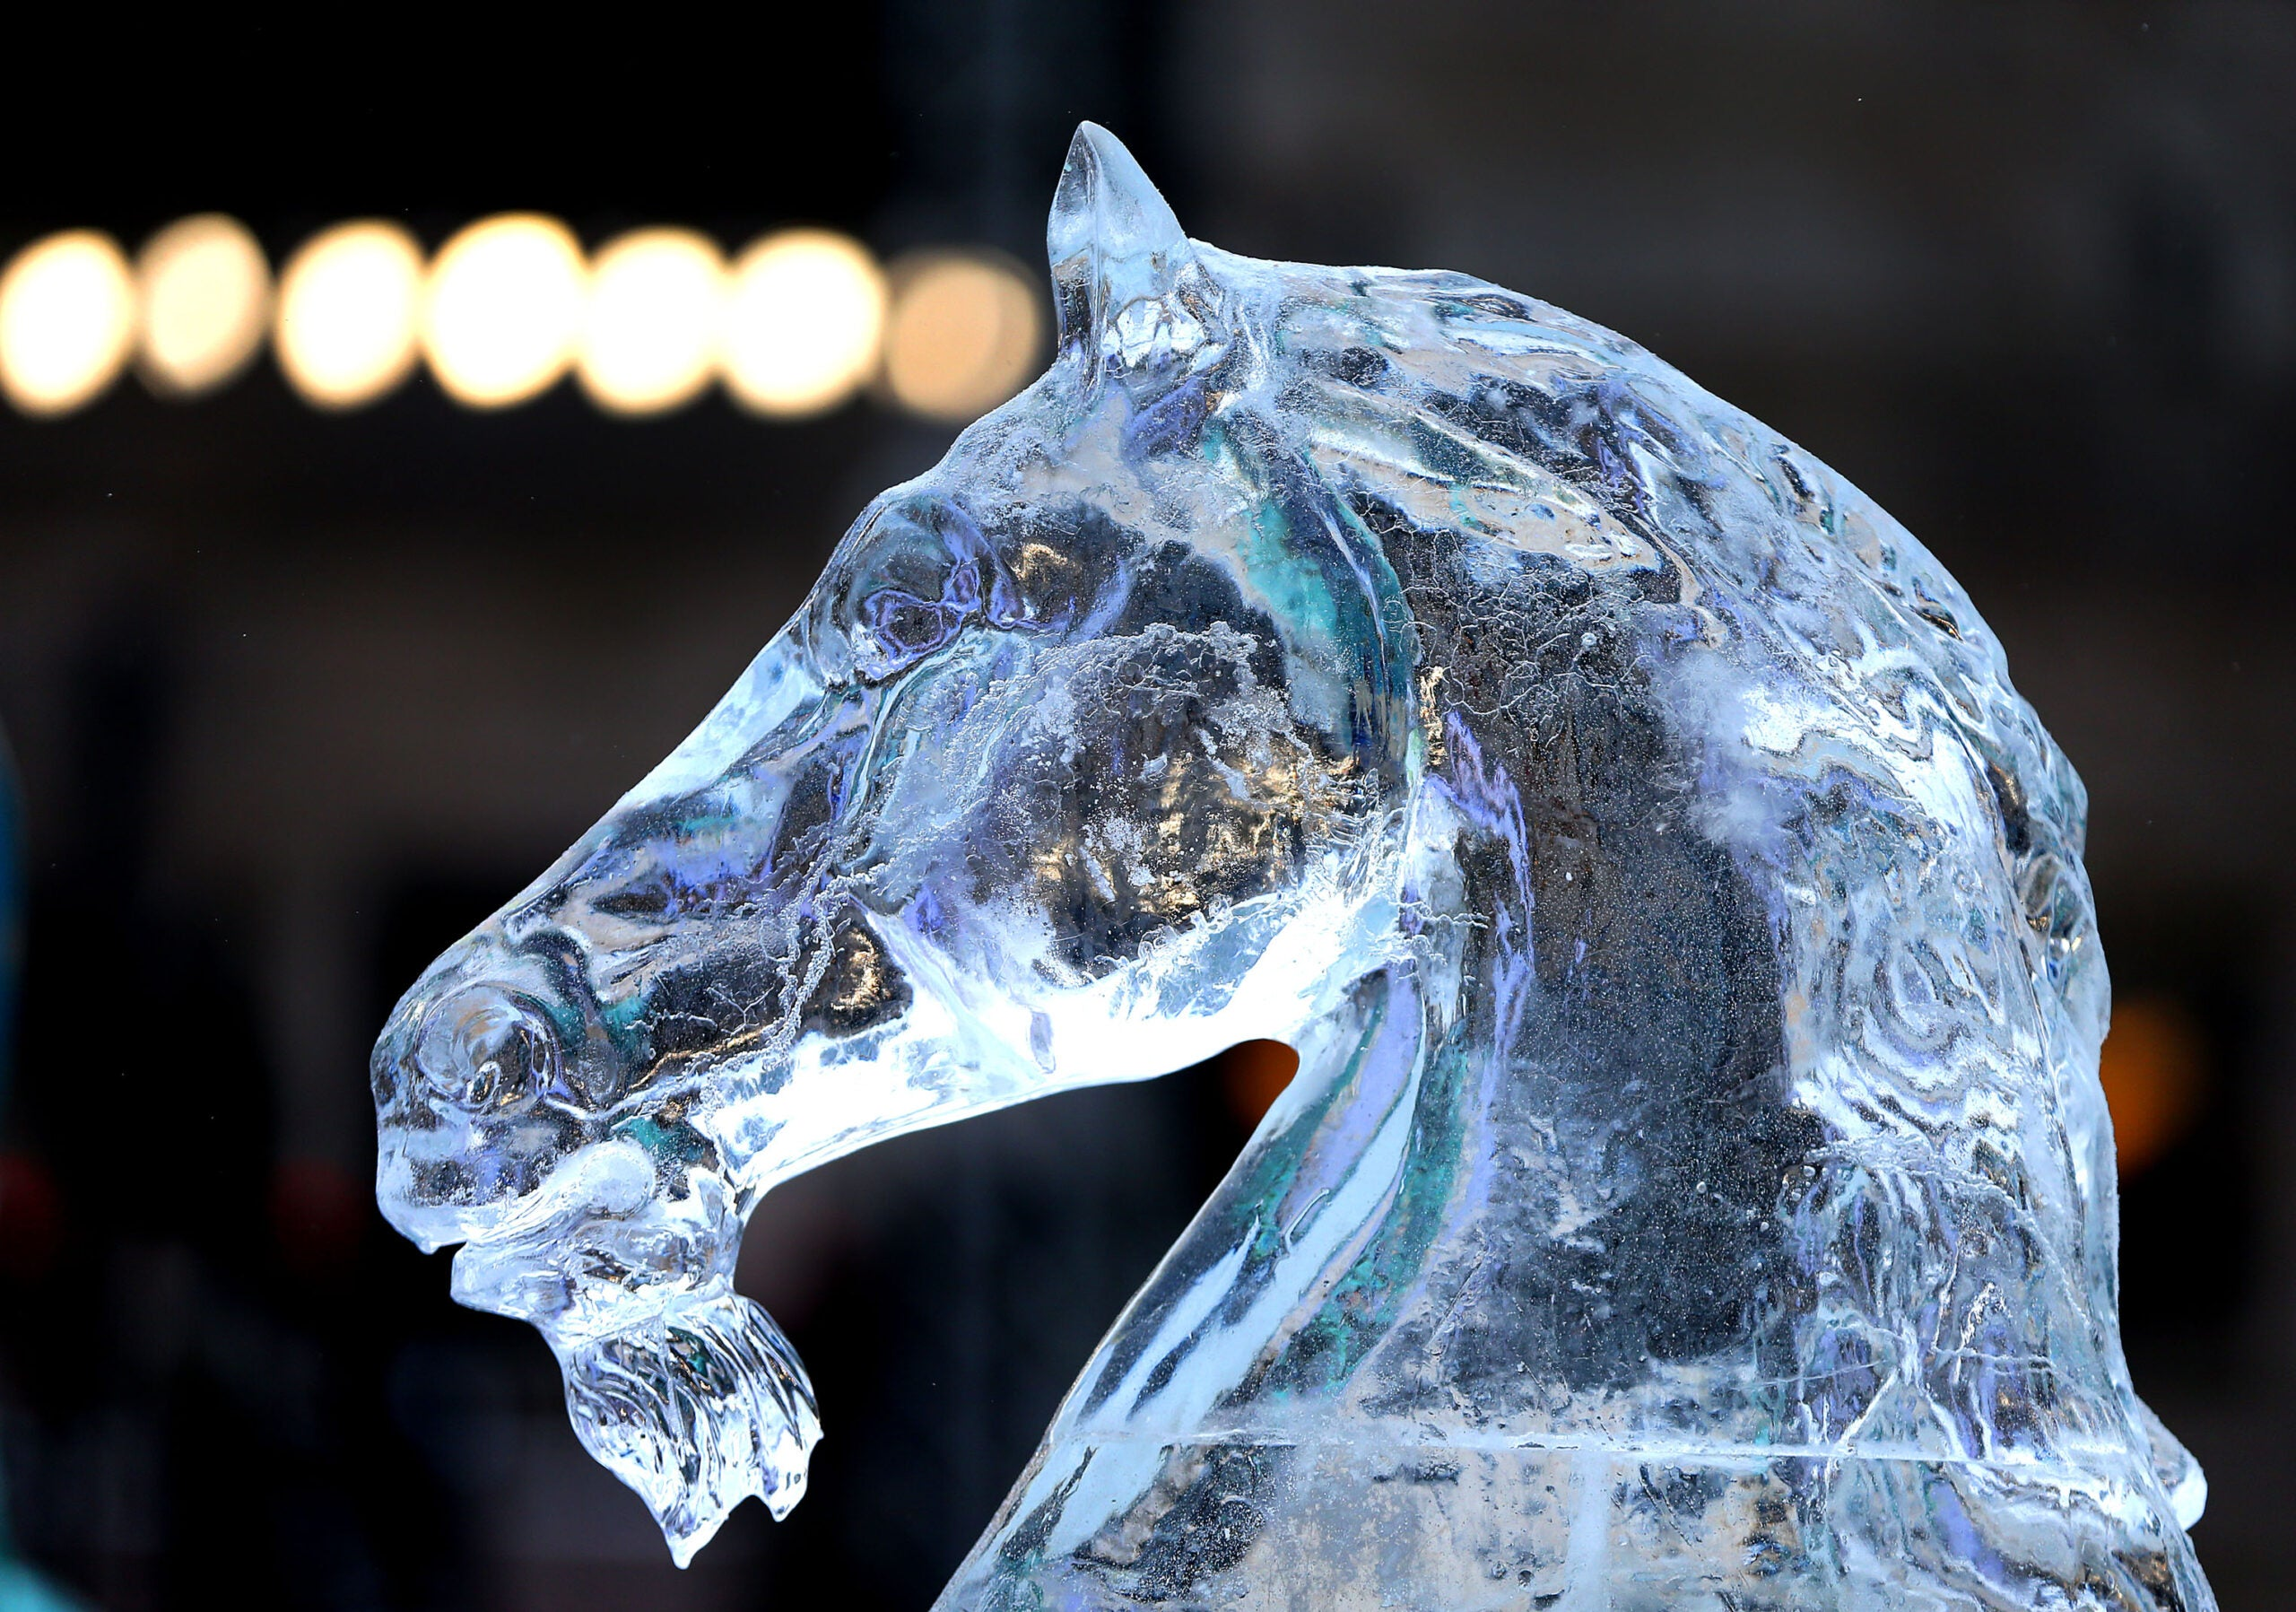 Ice sculpture for Boston's First Night celebration